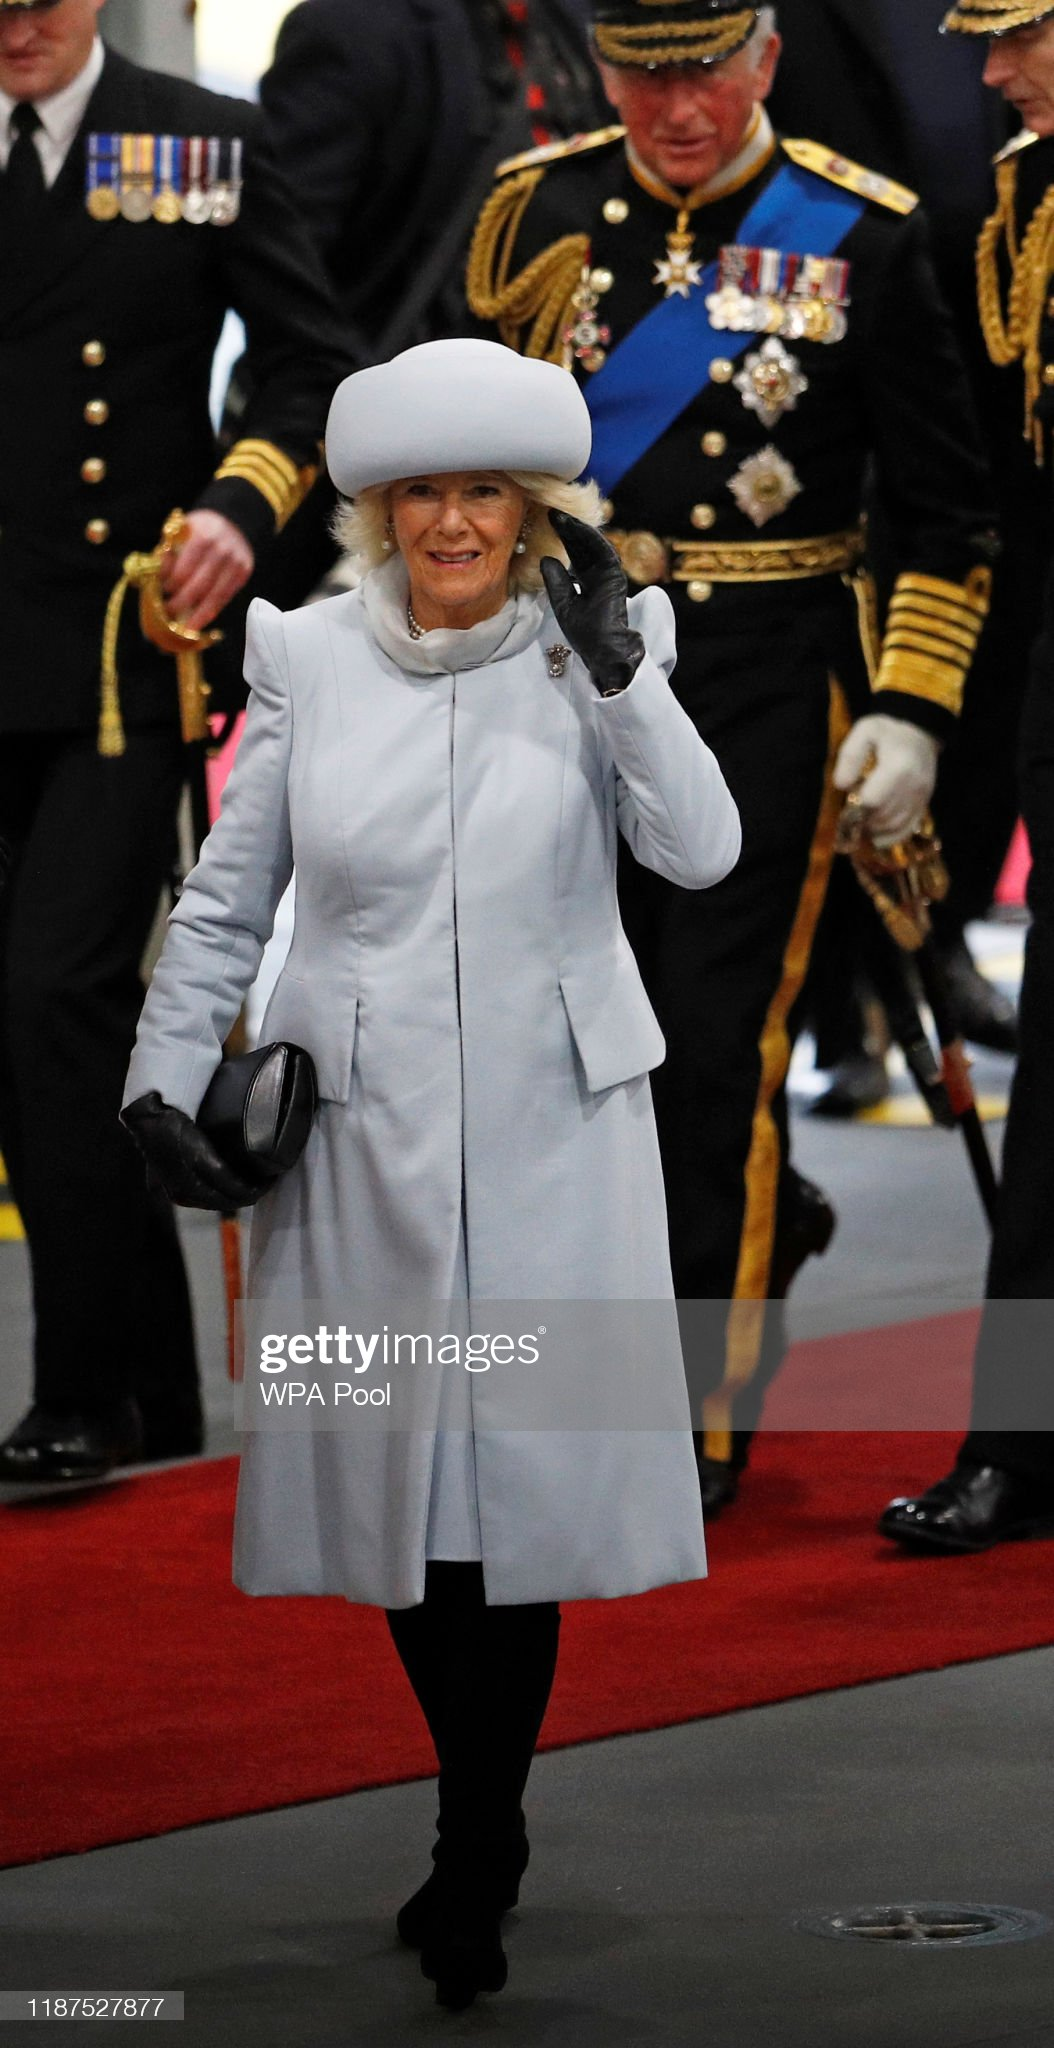 prince-charles-prince-of-wales-and-camilla-duchess-of-cornwall-attend-picture-id1187527877